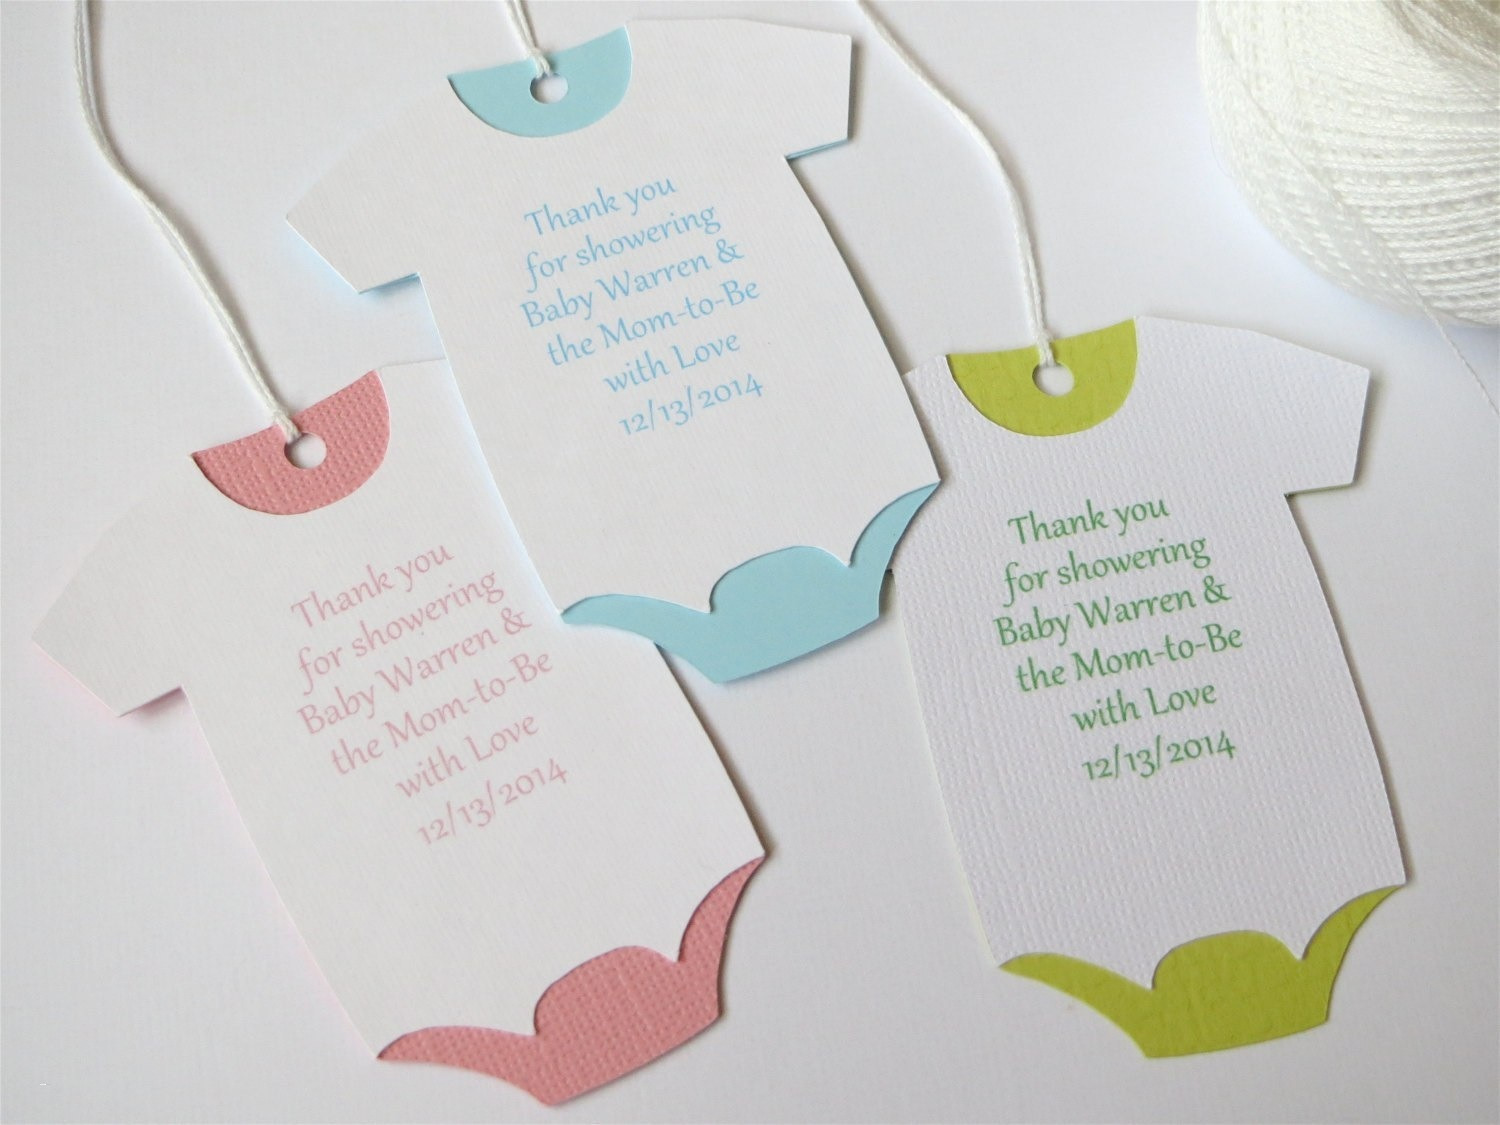 Full Size of Baby Shower:72+ Rousing Baby Shower Thank You Cards Picture Ideas Baby Shower Thank U Cards Lovely To Write Baby Shower Thank You Baby Shower Thank U Cards New Wedding Gifts Thank You Cards Luxury Baby Shower Thank You